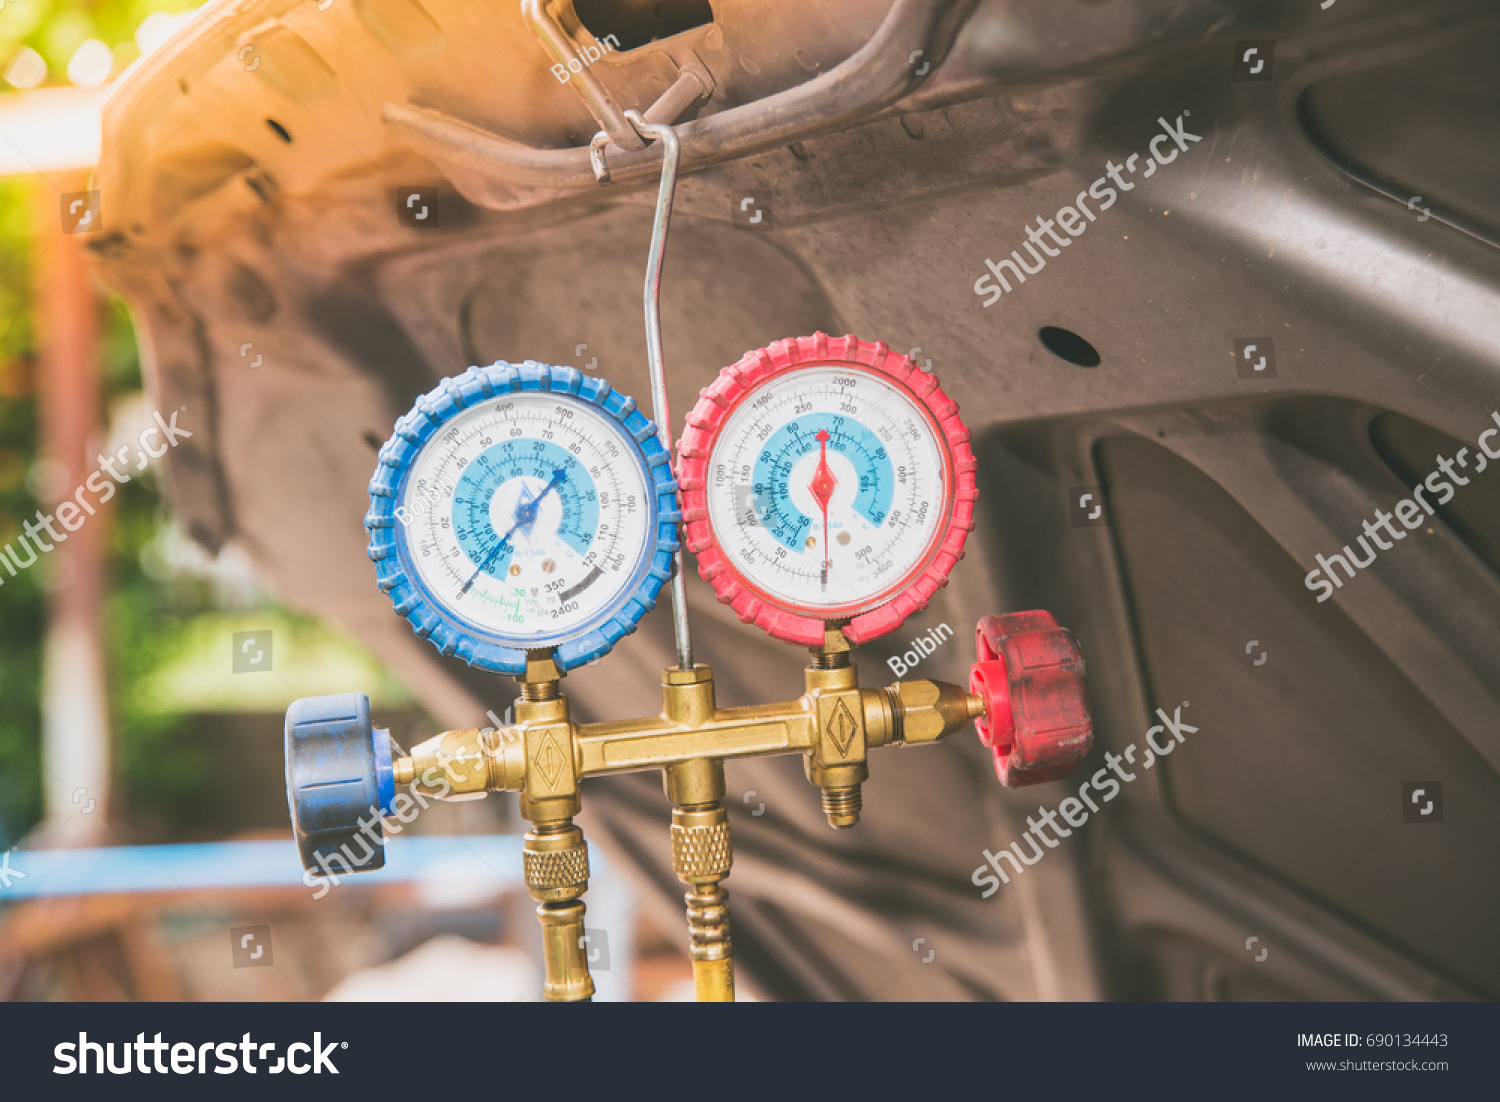 Manometer Pressure Gage Refrigerant Refill Car Stock Photo ...